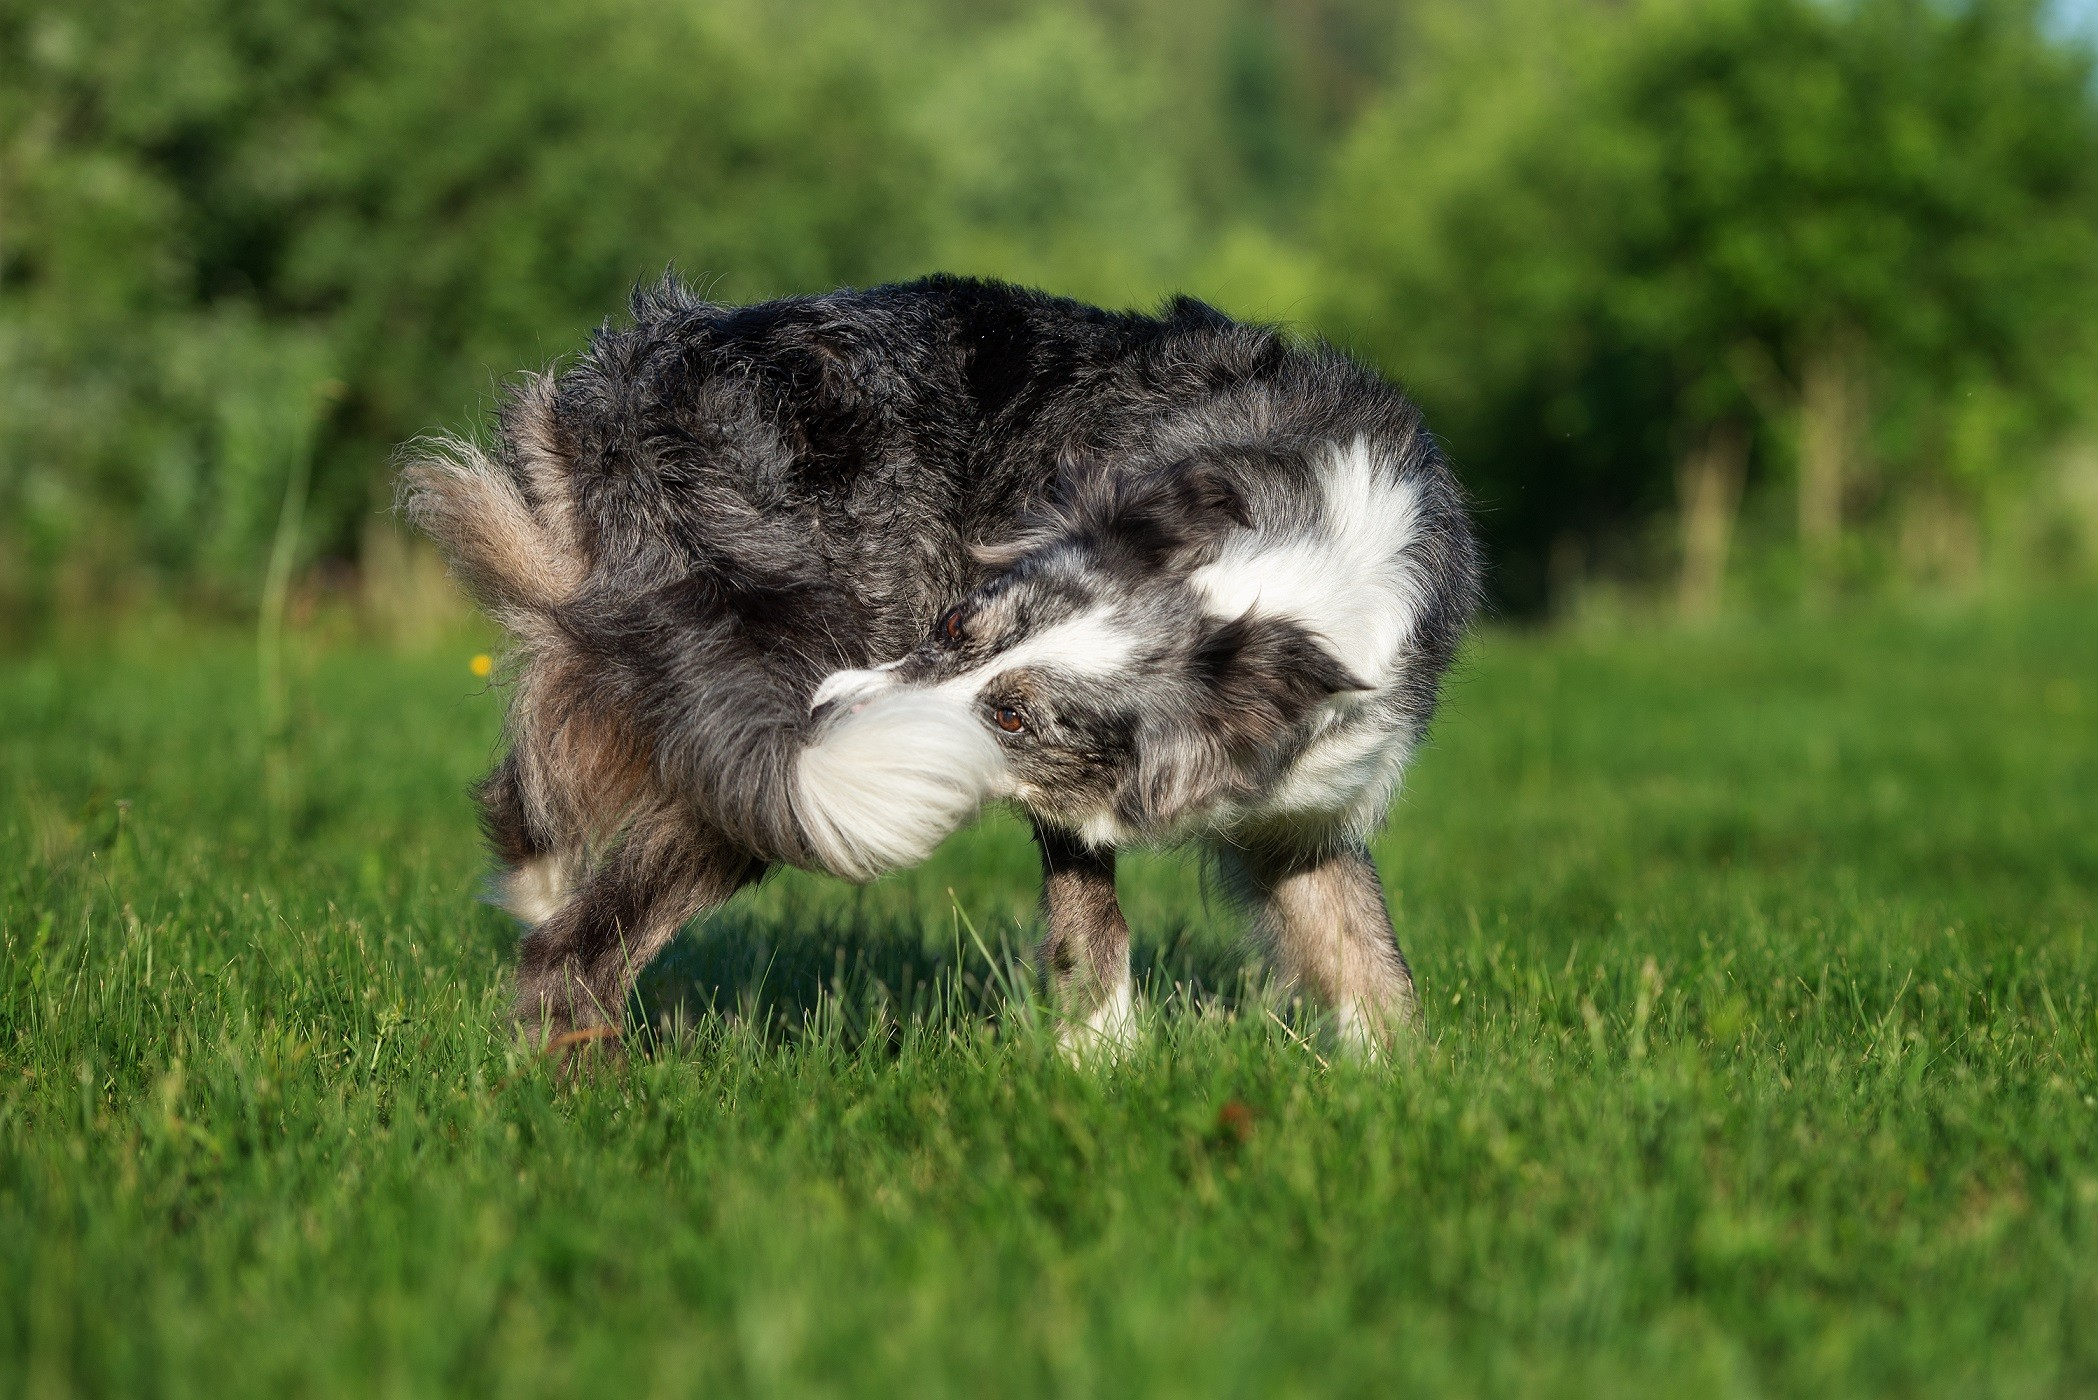 The Reasons Behind These Weird Dog Behaviors Might